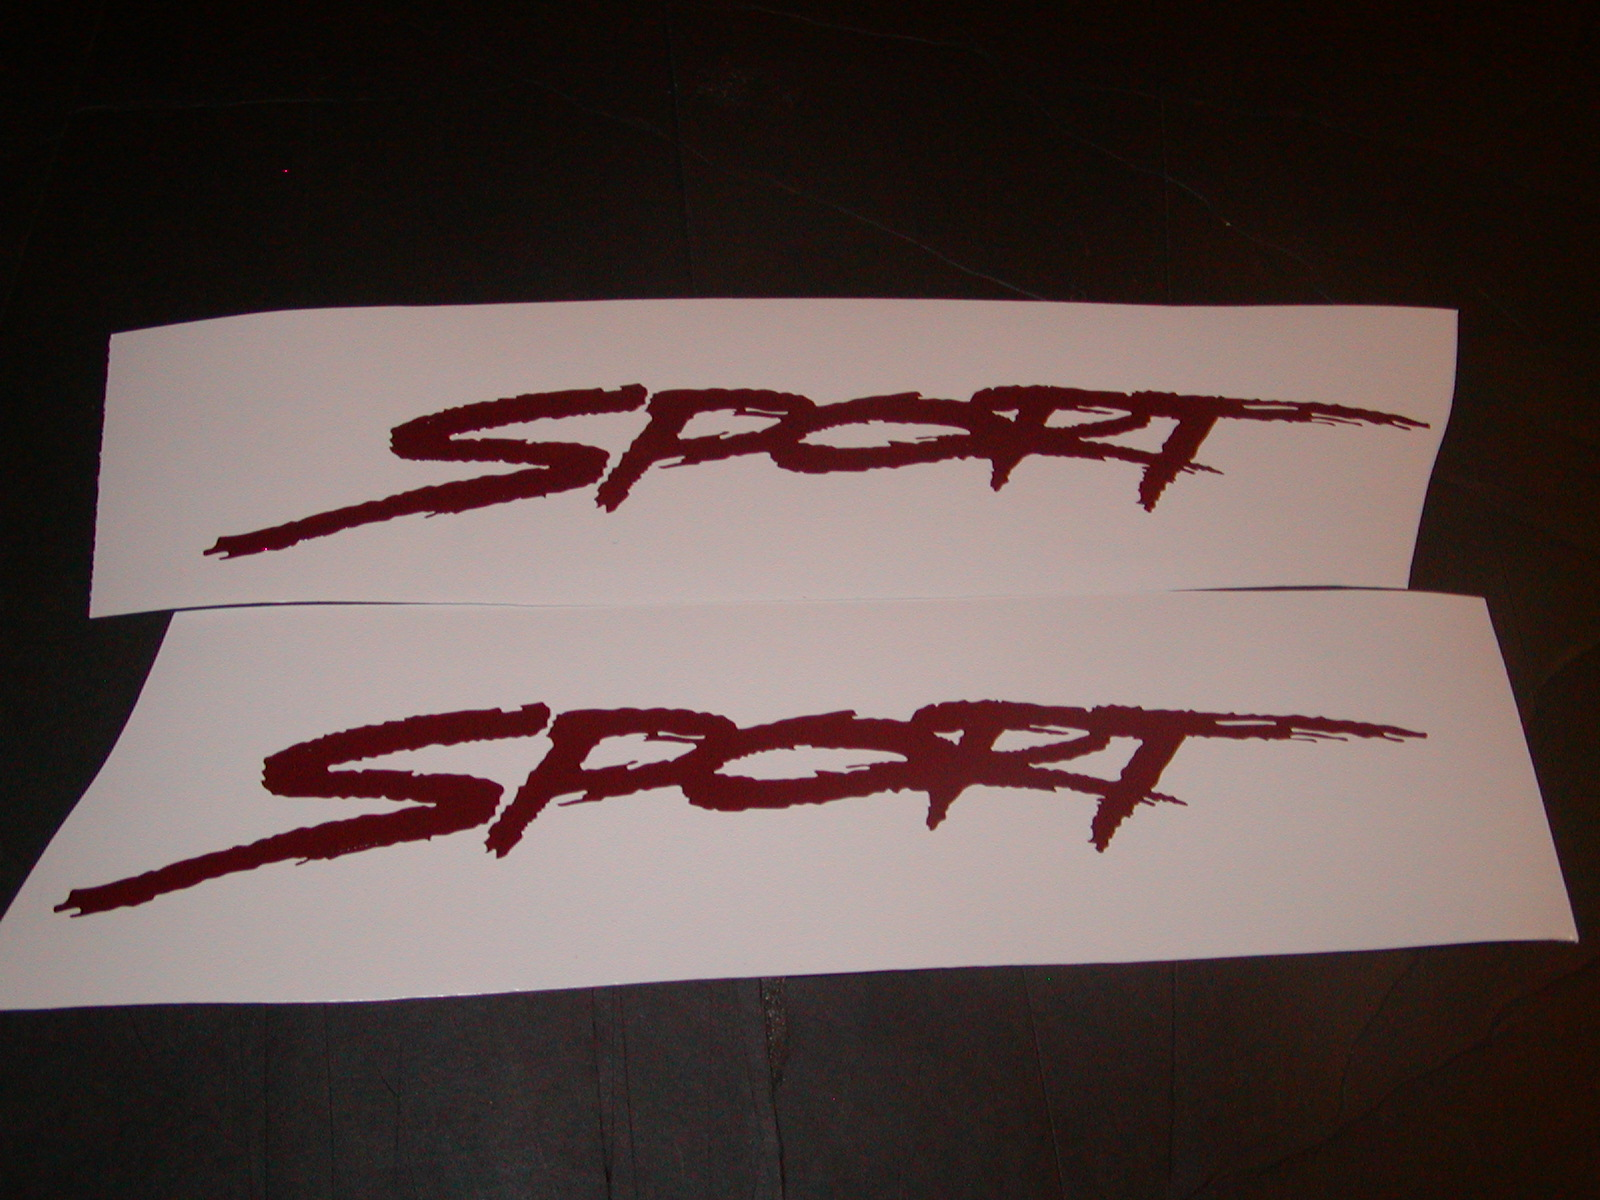 At Superb Graphics, we specialize in Custom decals,Graphics and